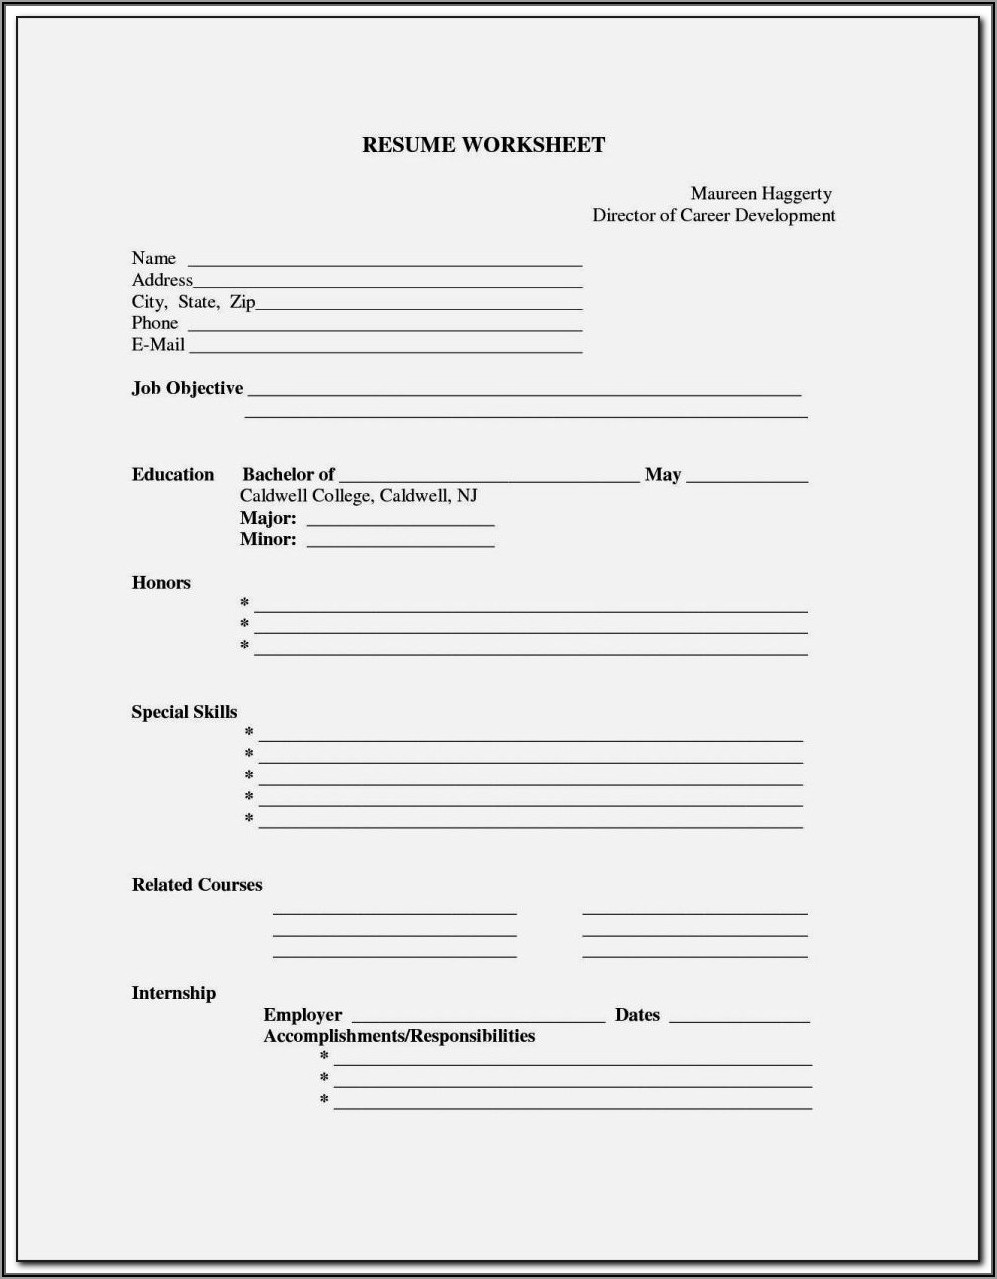 Curriculum Vitae Fill In The Blanks